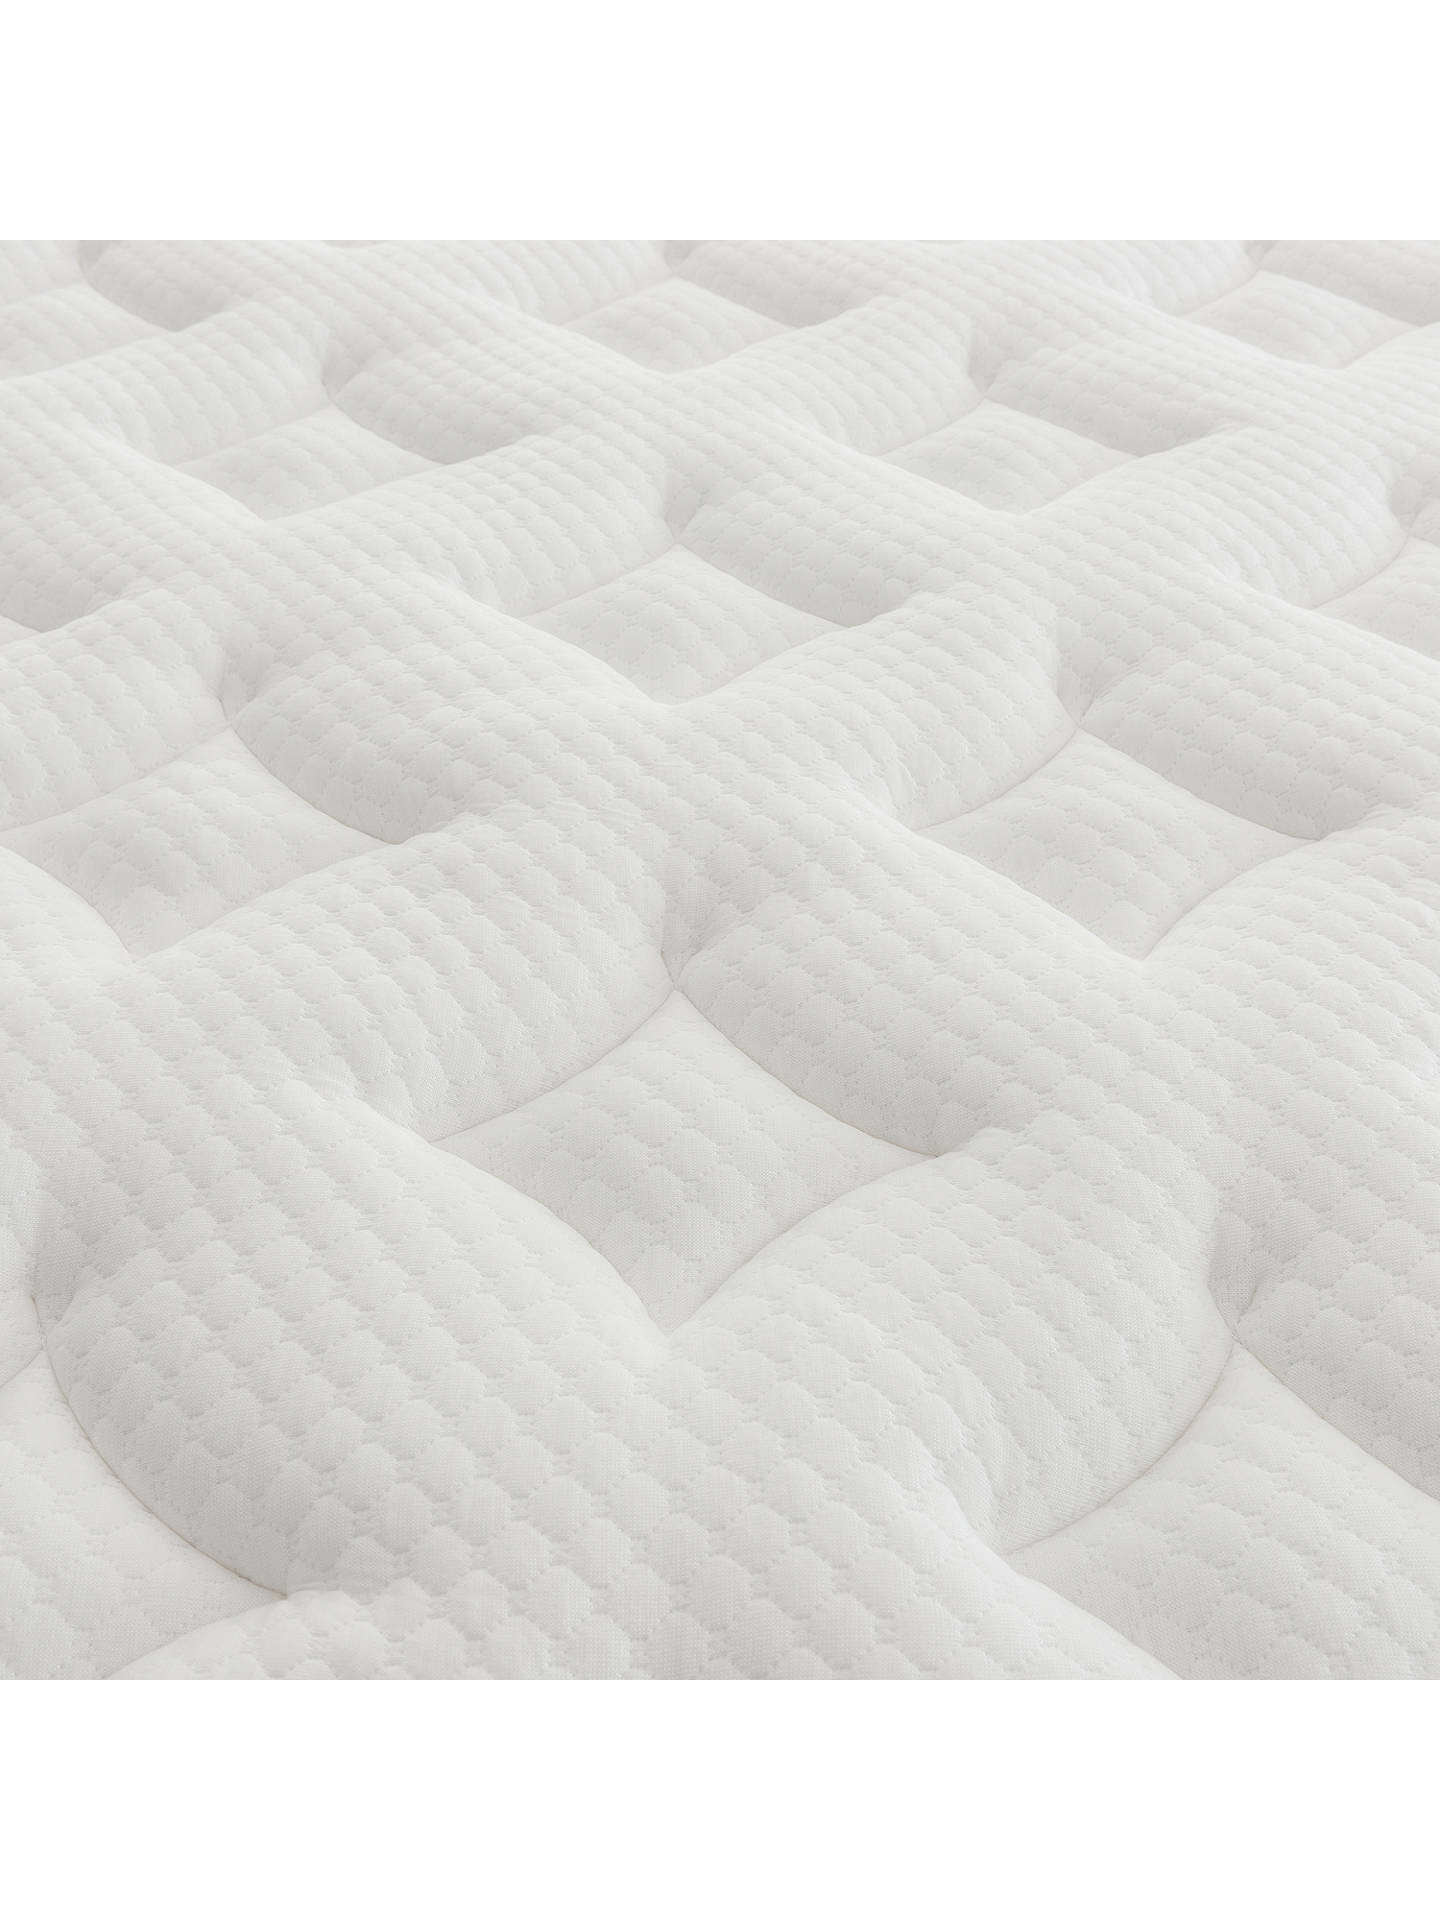 Buy Silentnight Sleep Genius 2800 Pocket Latex Mattress, Medium Tension, Super King Size Online at johnlewis.com